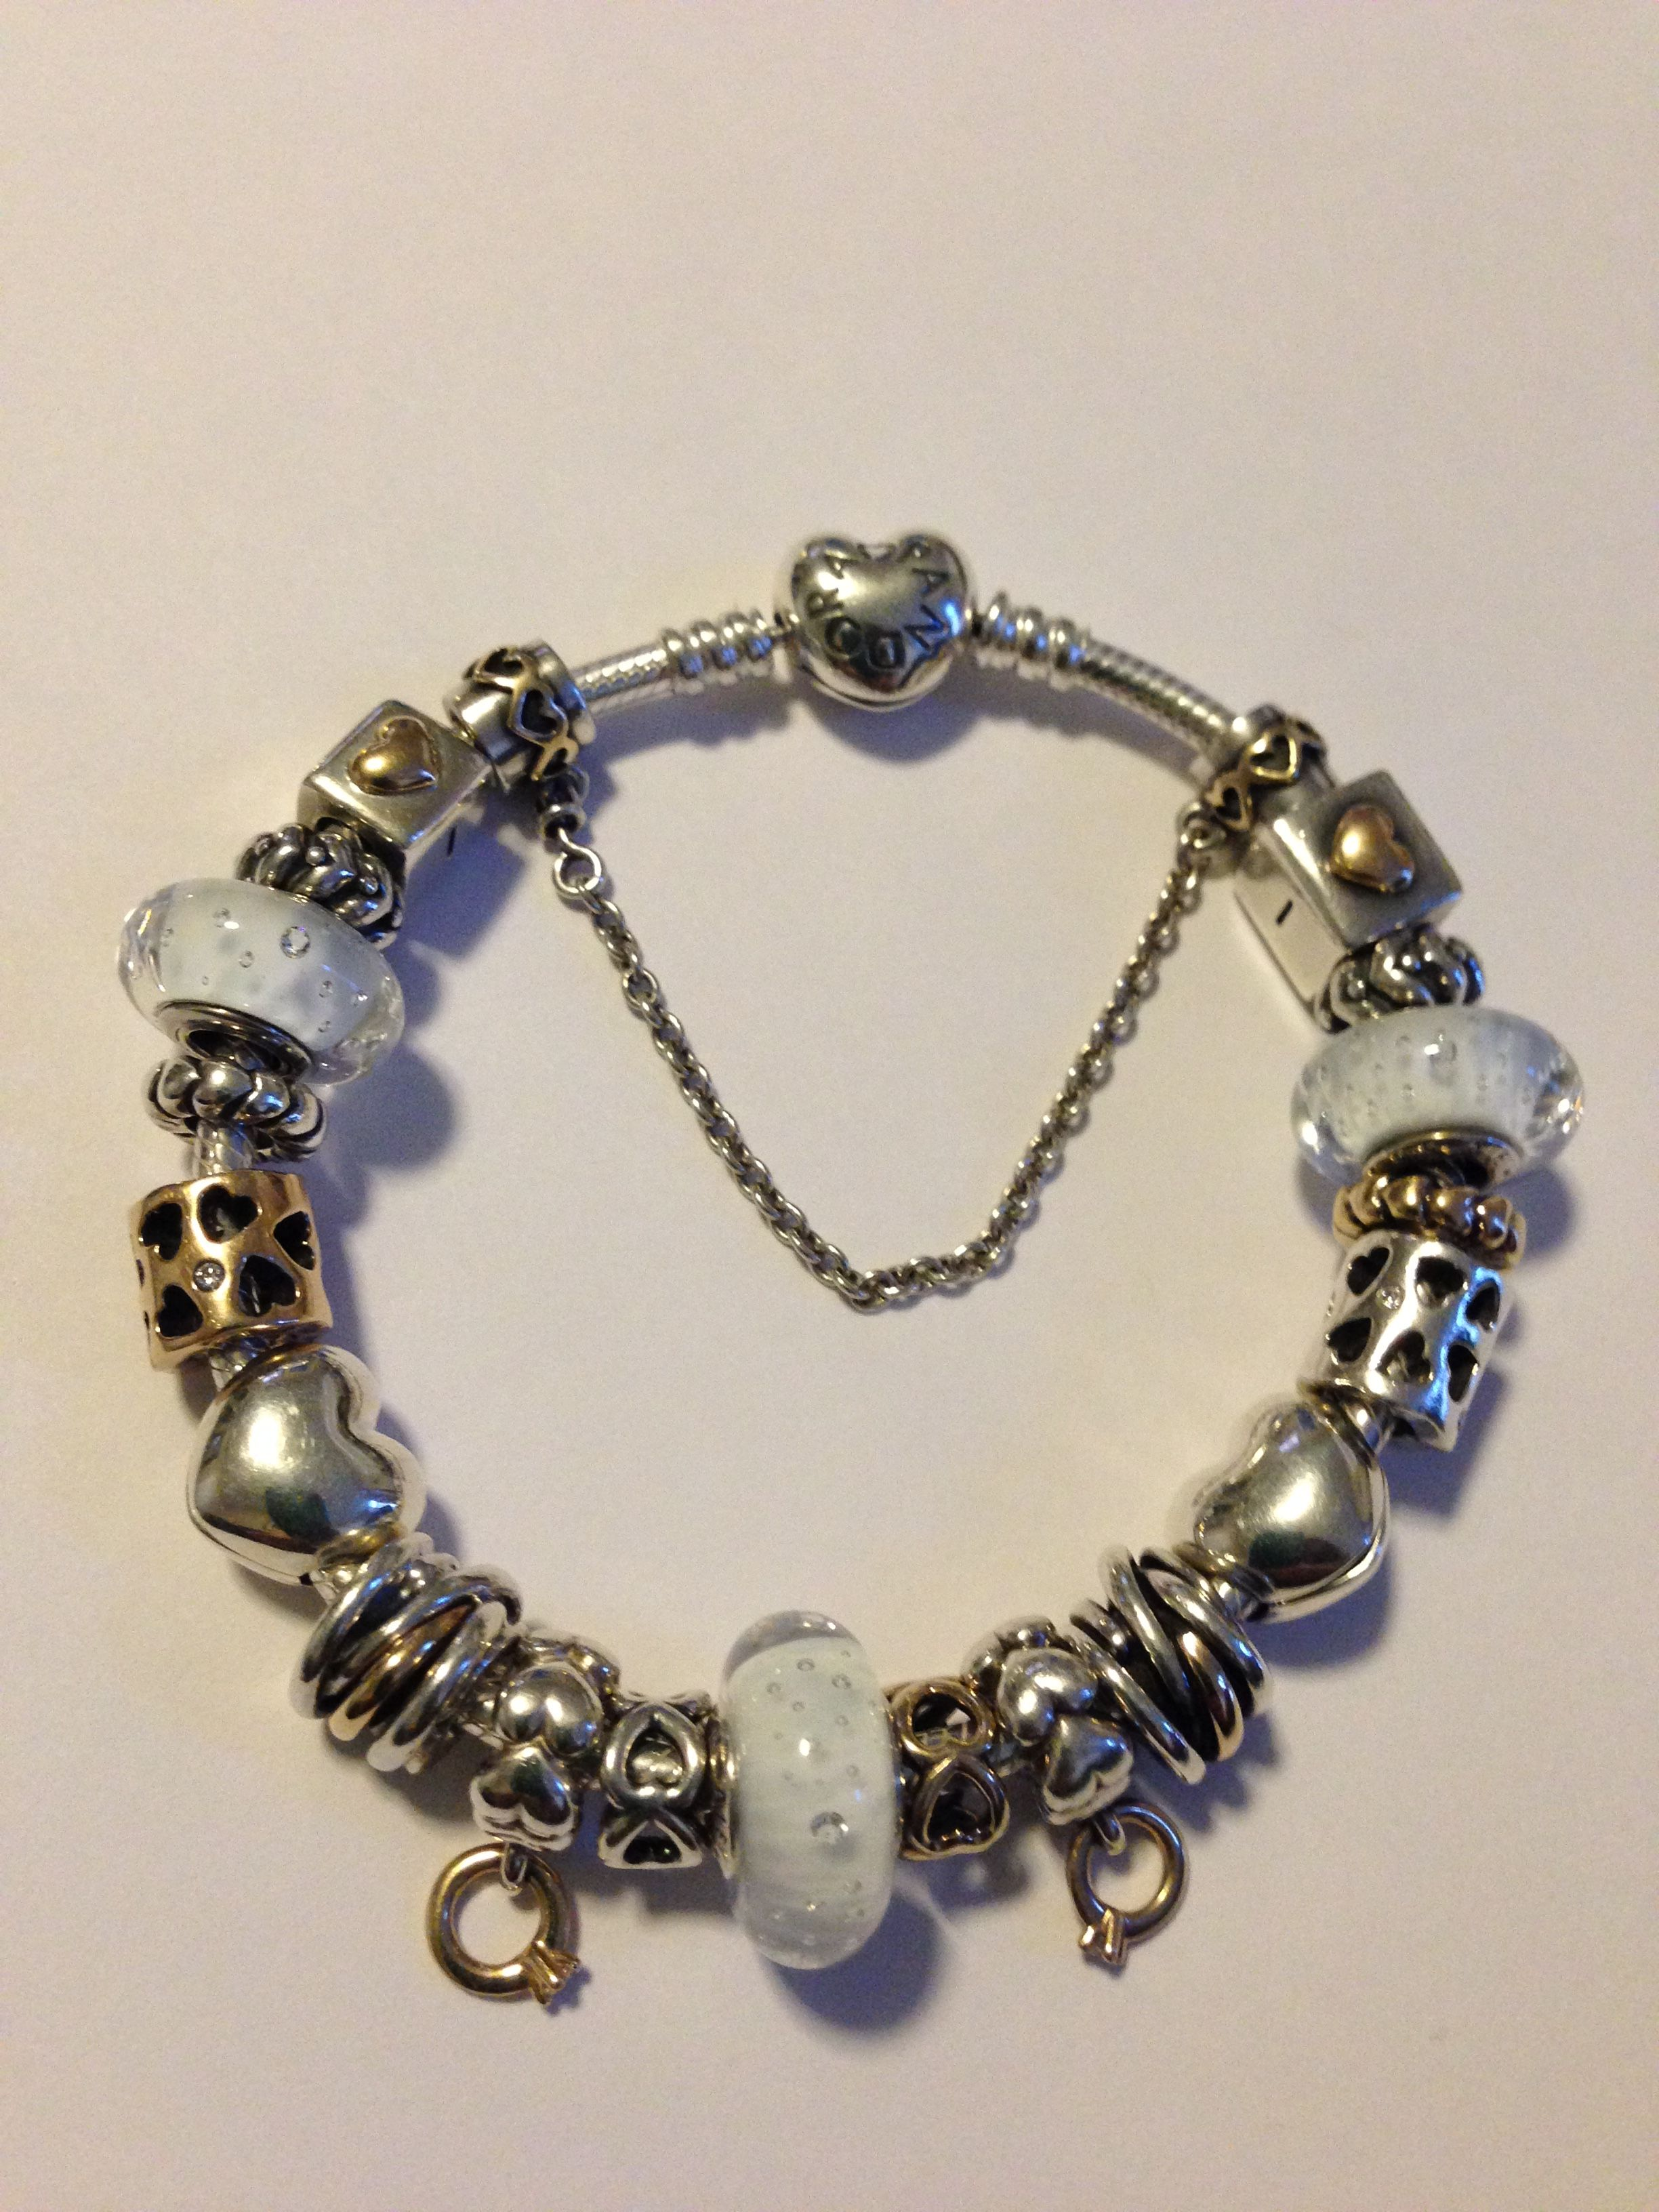 8627f2fa412d3 My hearts and love, clear effervescence Murano glass charms Pandora ...